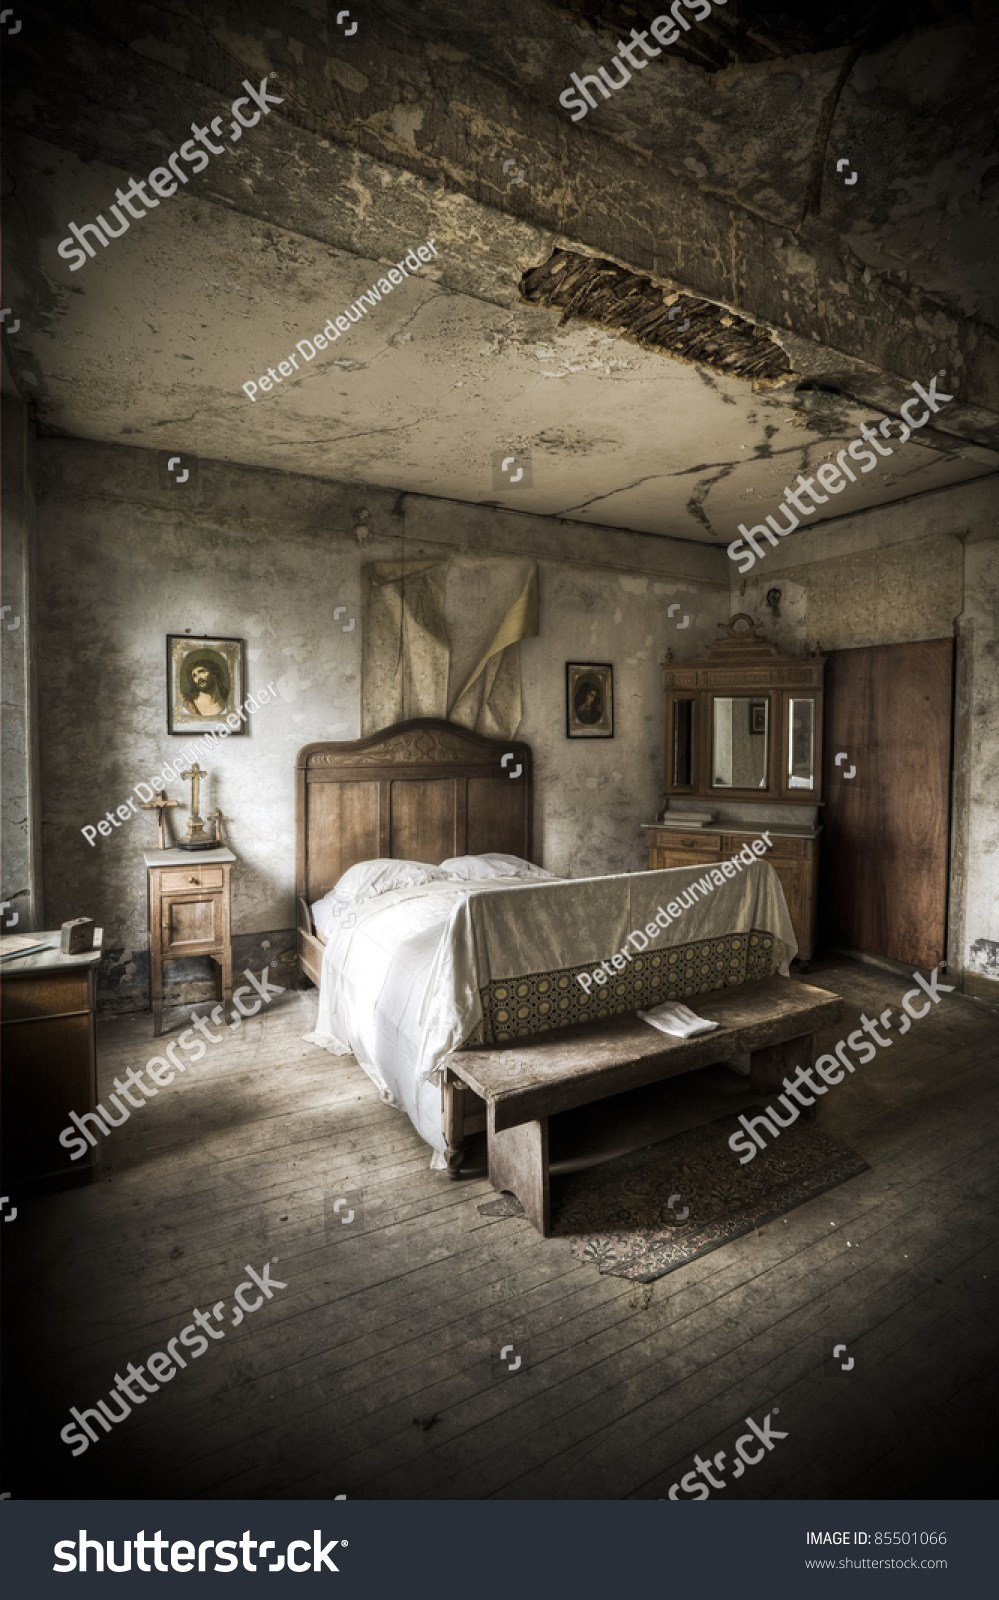 Best A Creepy Bedroom Scenery Cracked Walls And Wooden Floors With Pictures